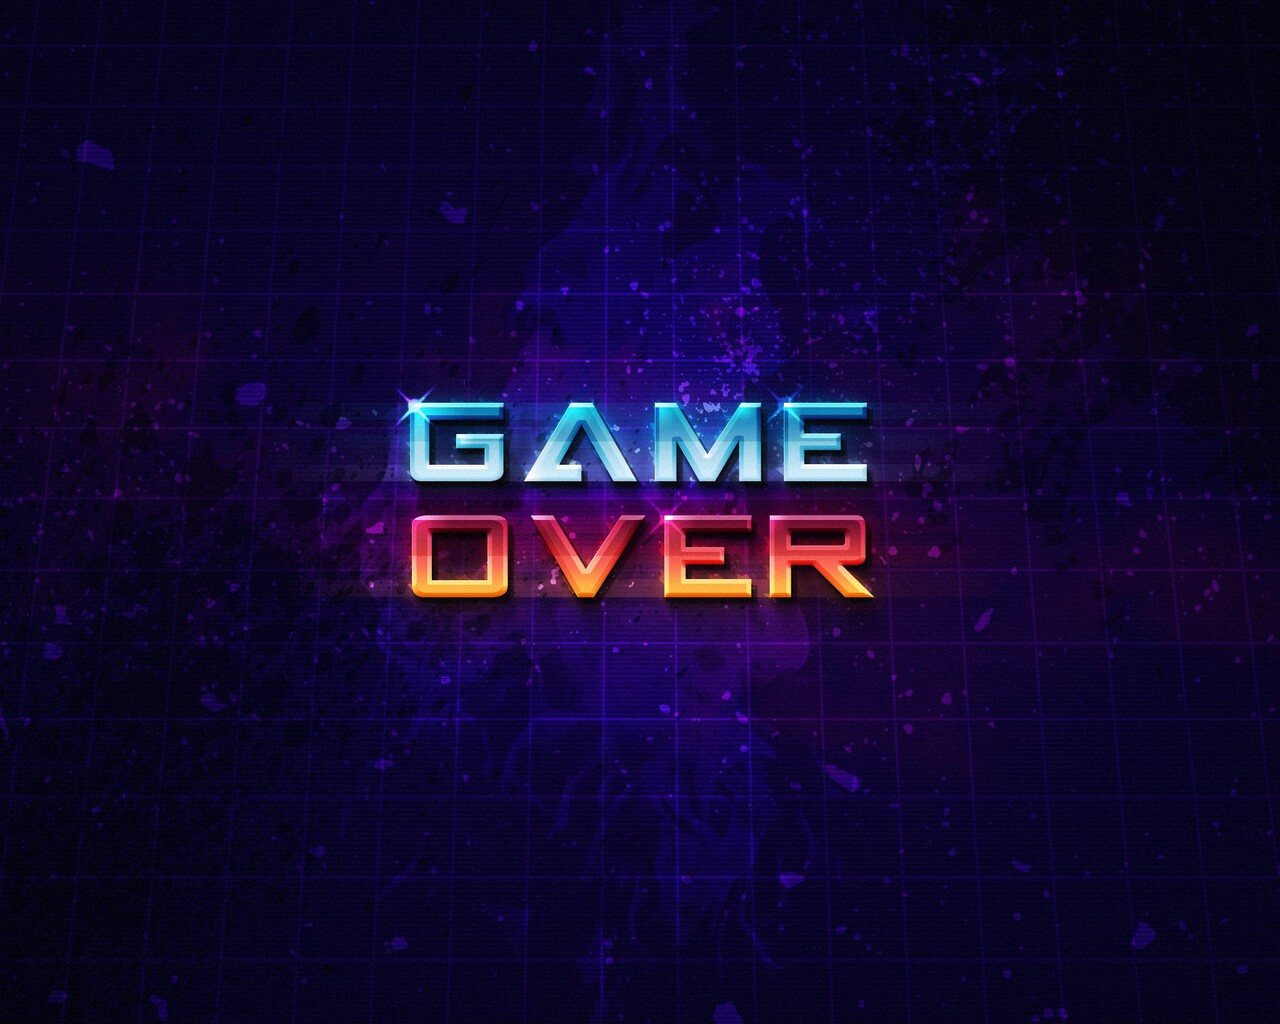 game-over-typography-art-4k-tl.jpg